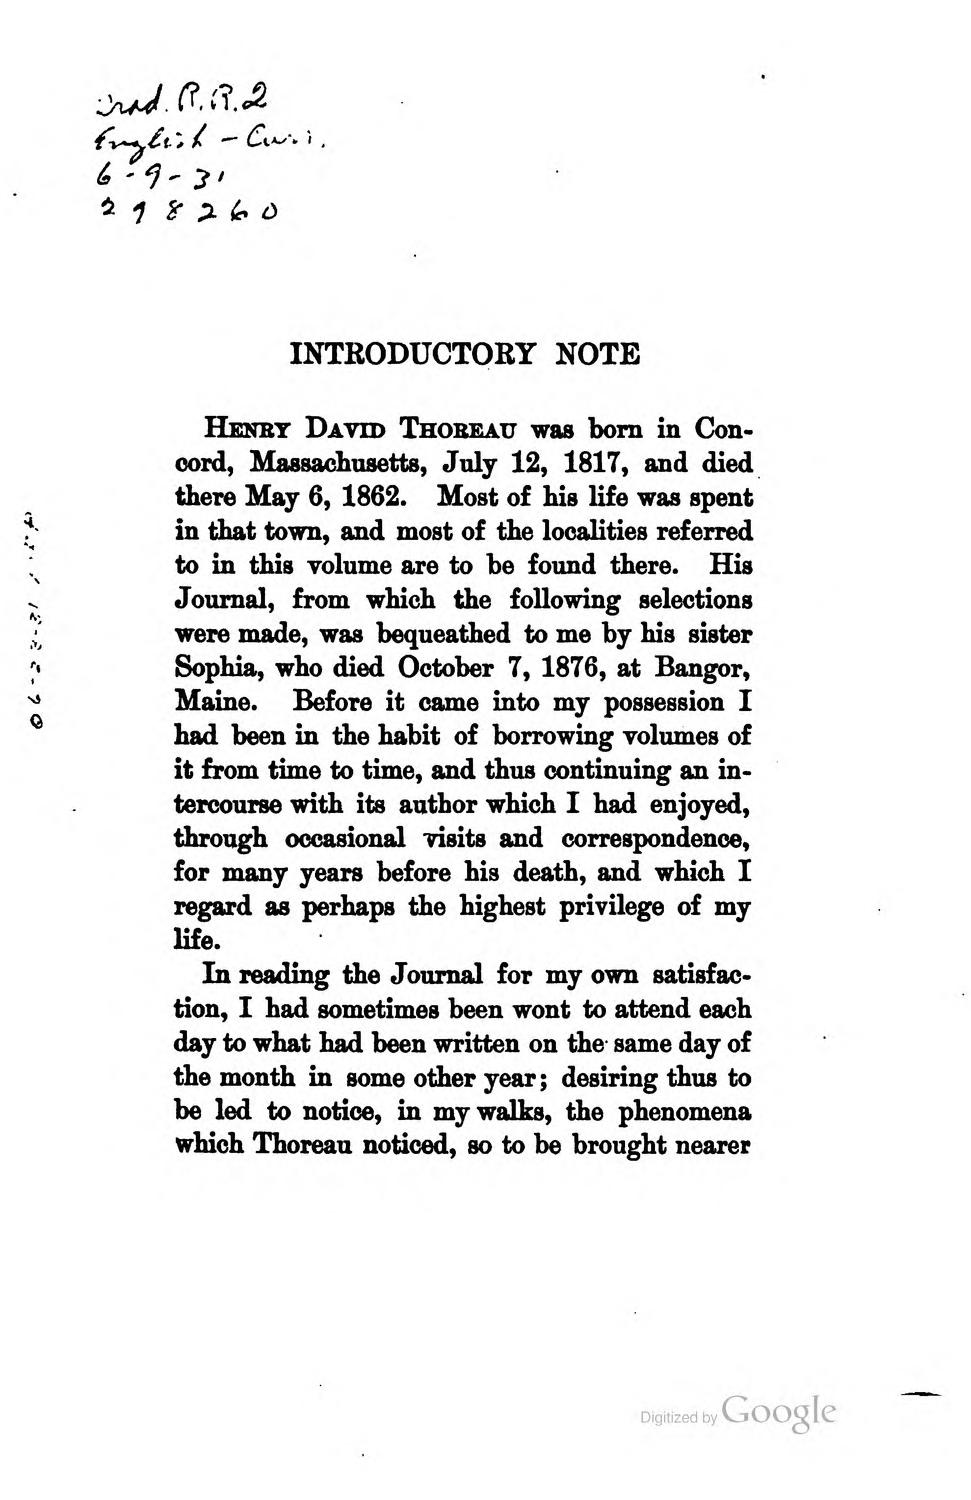 a review of henry david thoreaus writing work Henry david thoreau (1817-1862) was an american writer, a dissenter, and,  after  the natural history of massachusetts (1842), which is supposedly a  review but is  he believed that a writer's work and his life should be one, though  he.